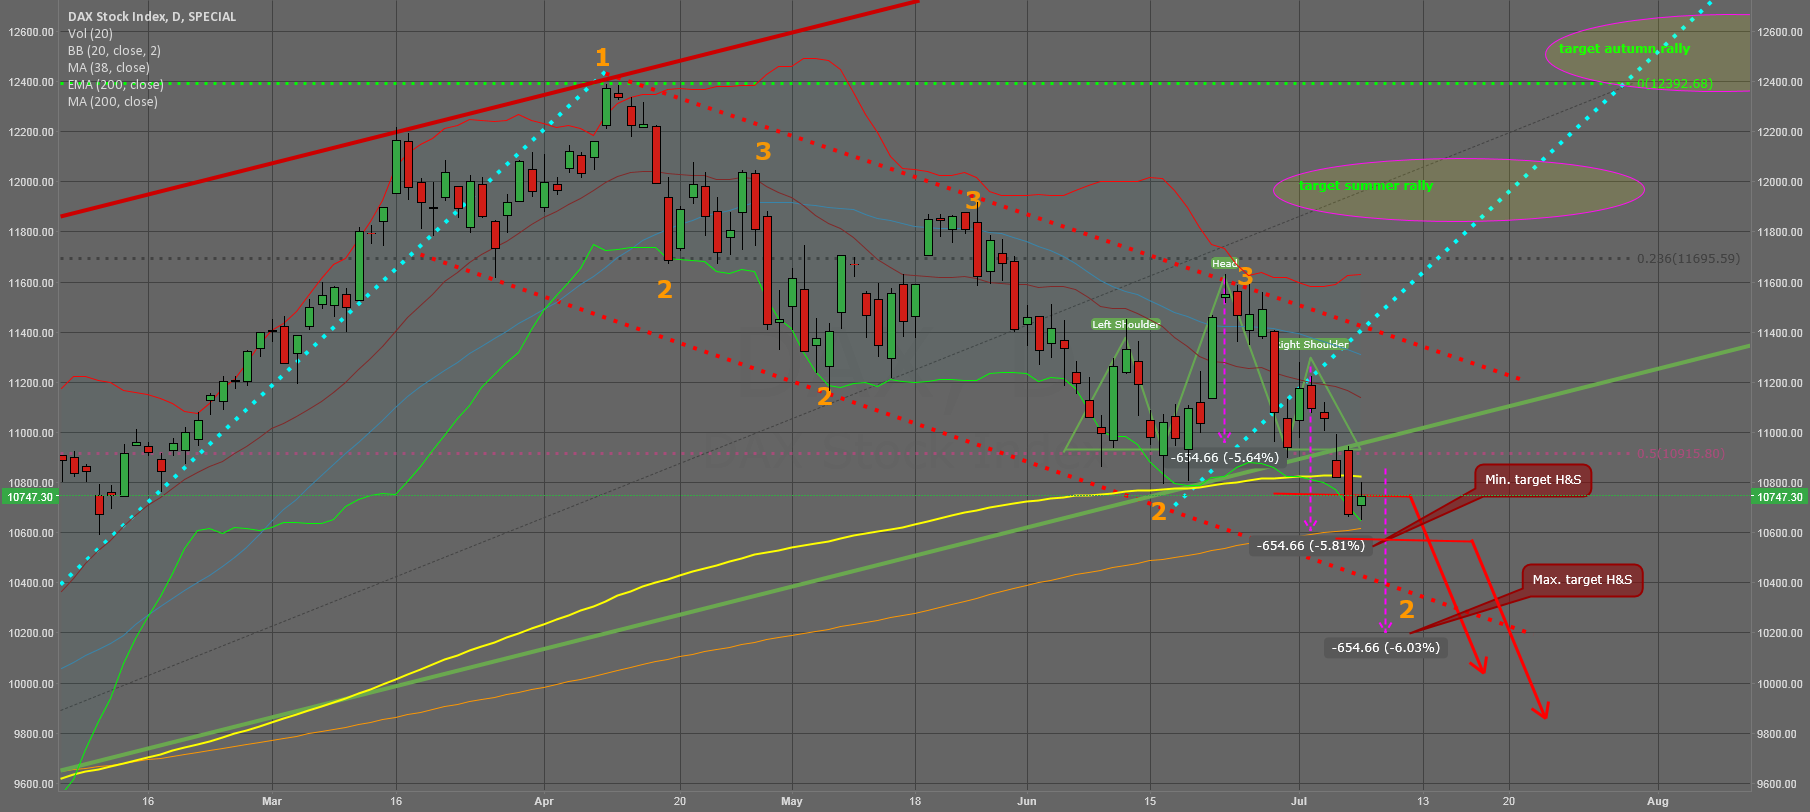 Dax caught between SMA 200 & EMA 200